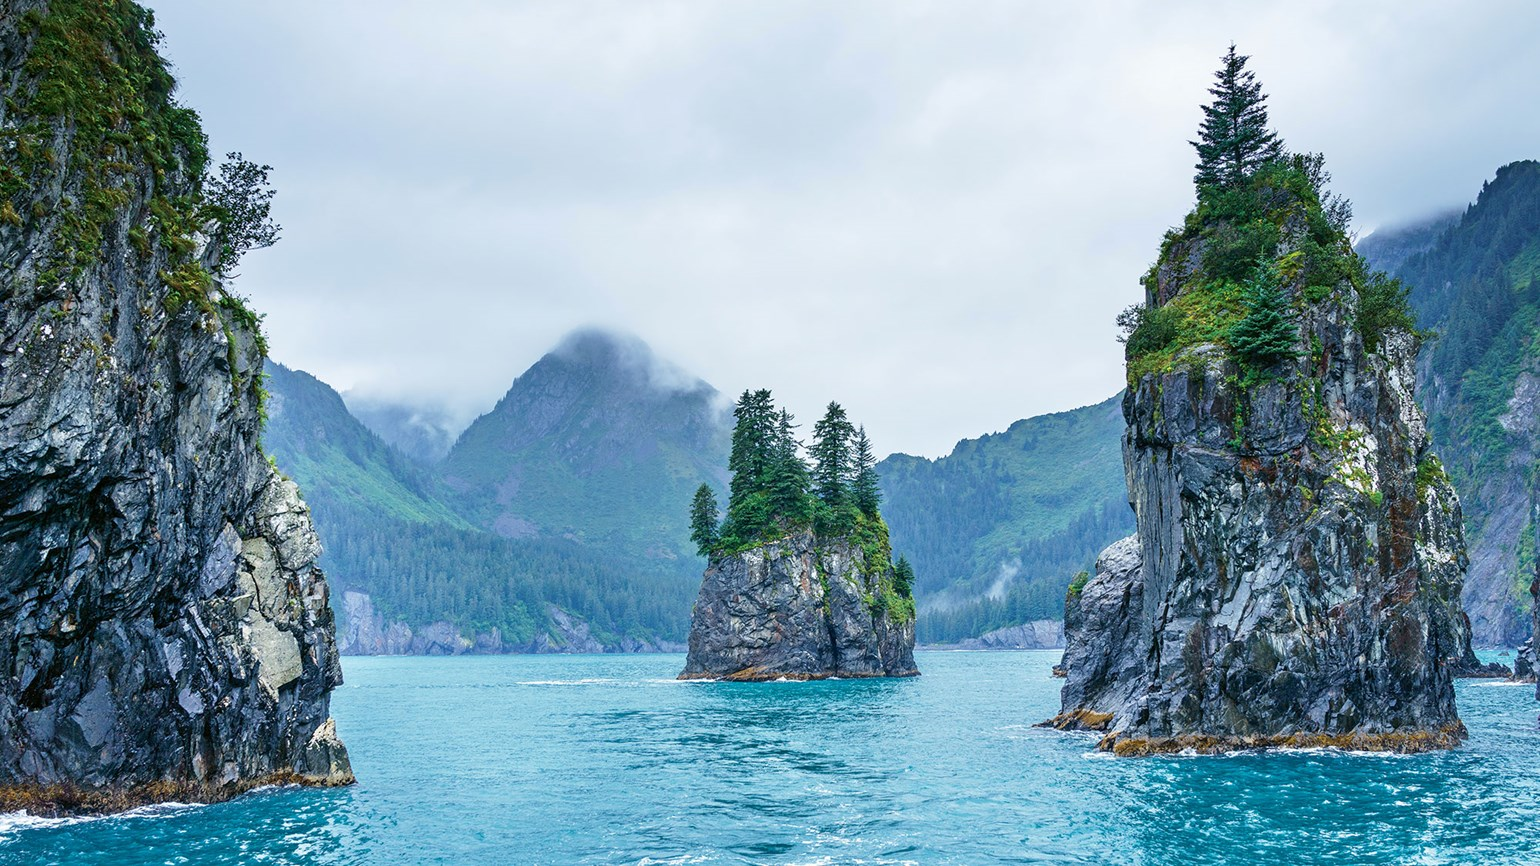 Railbookers offers 8 Alaska itineraries for summer